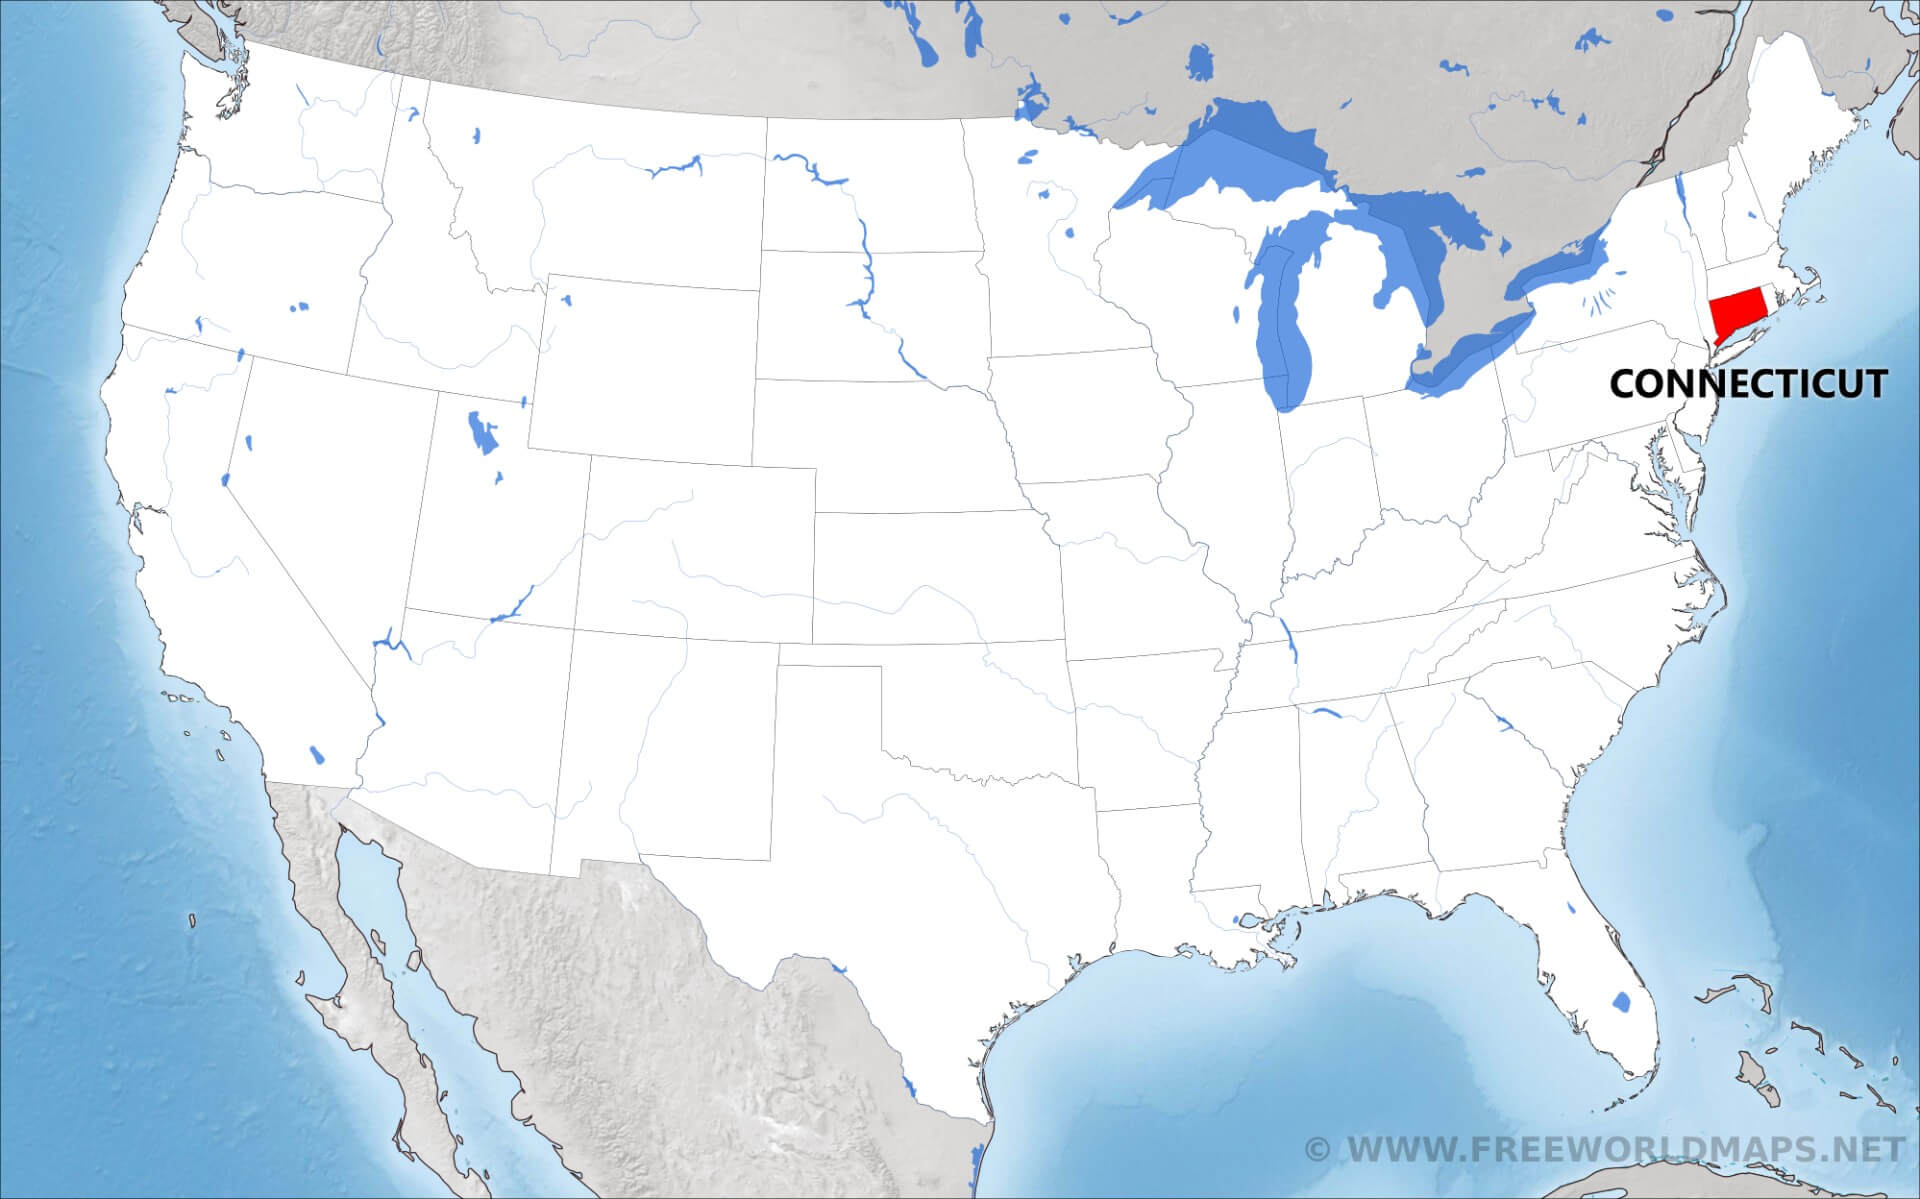 Where is Connecticut located on the map